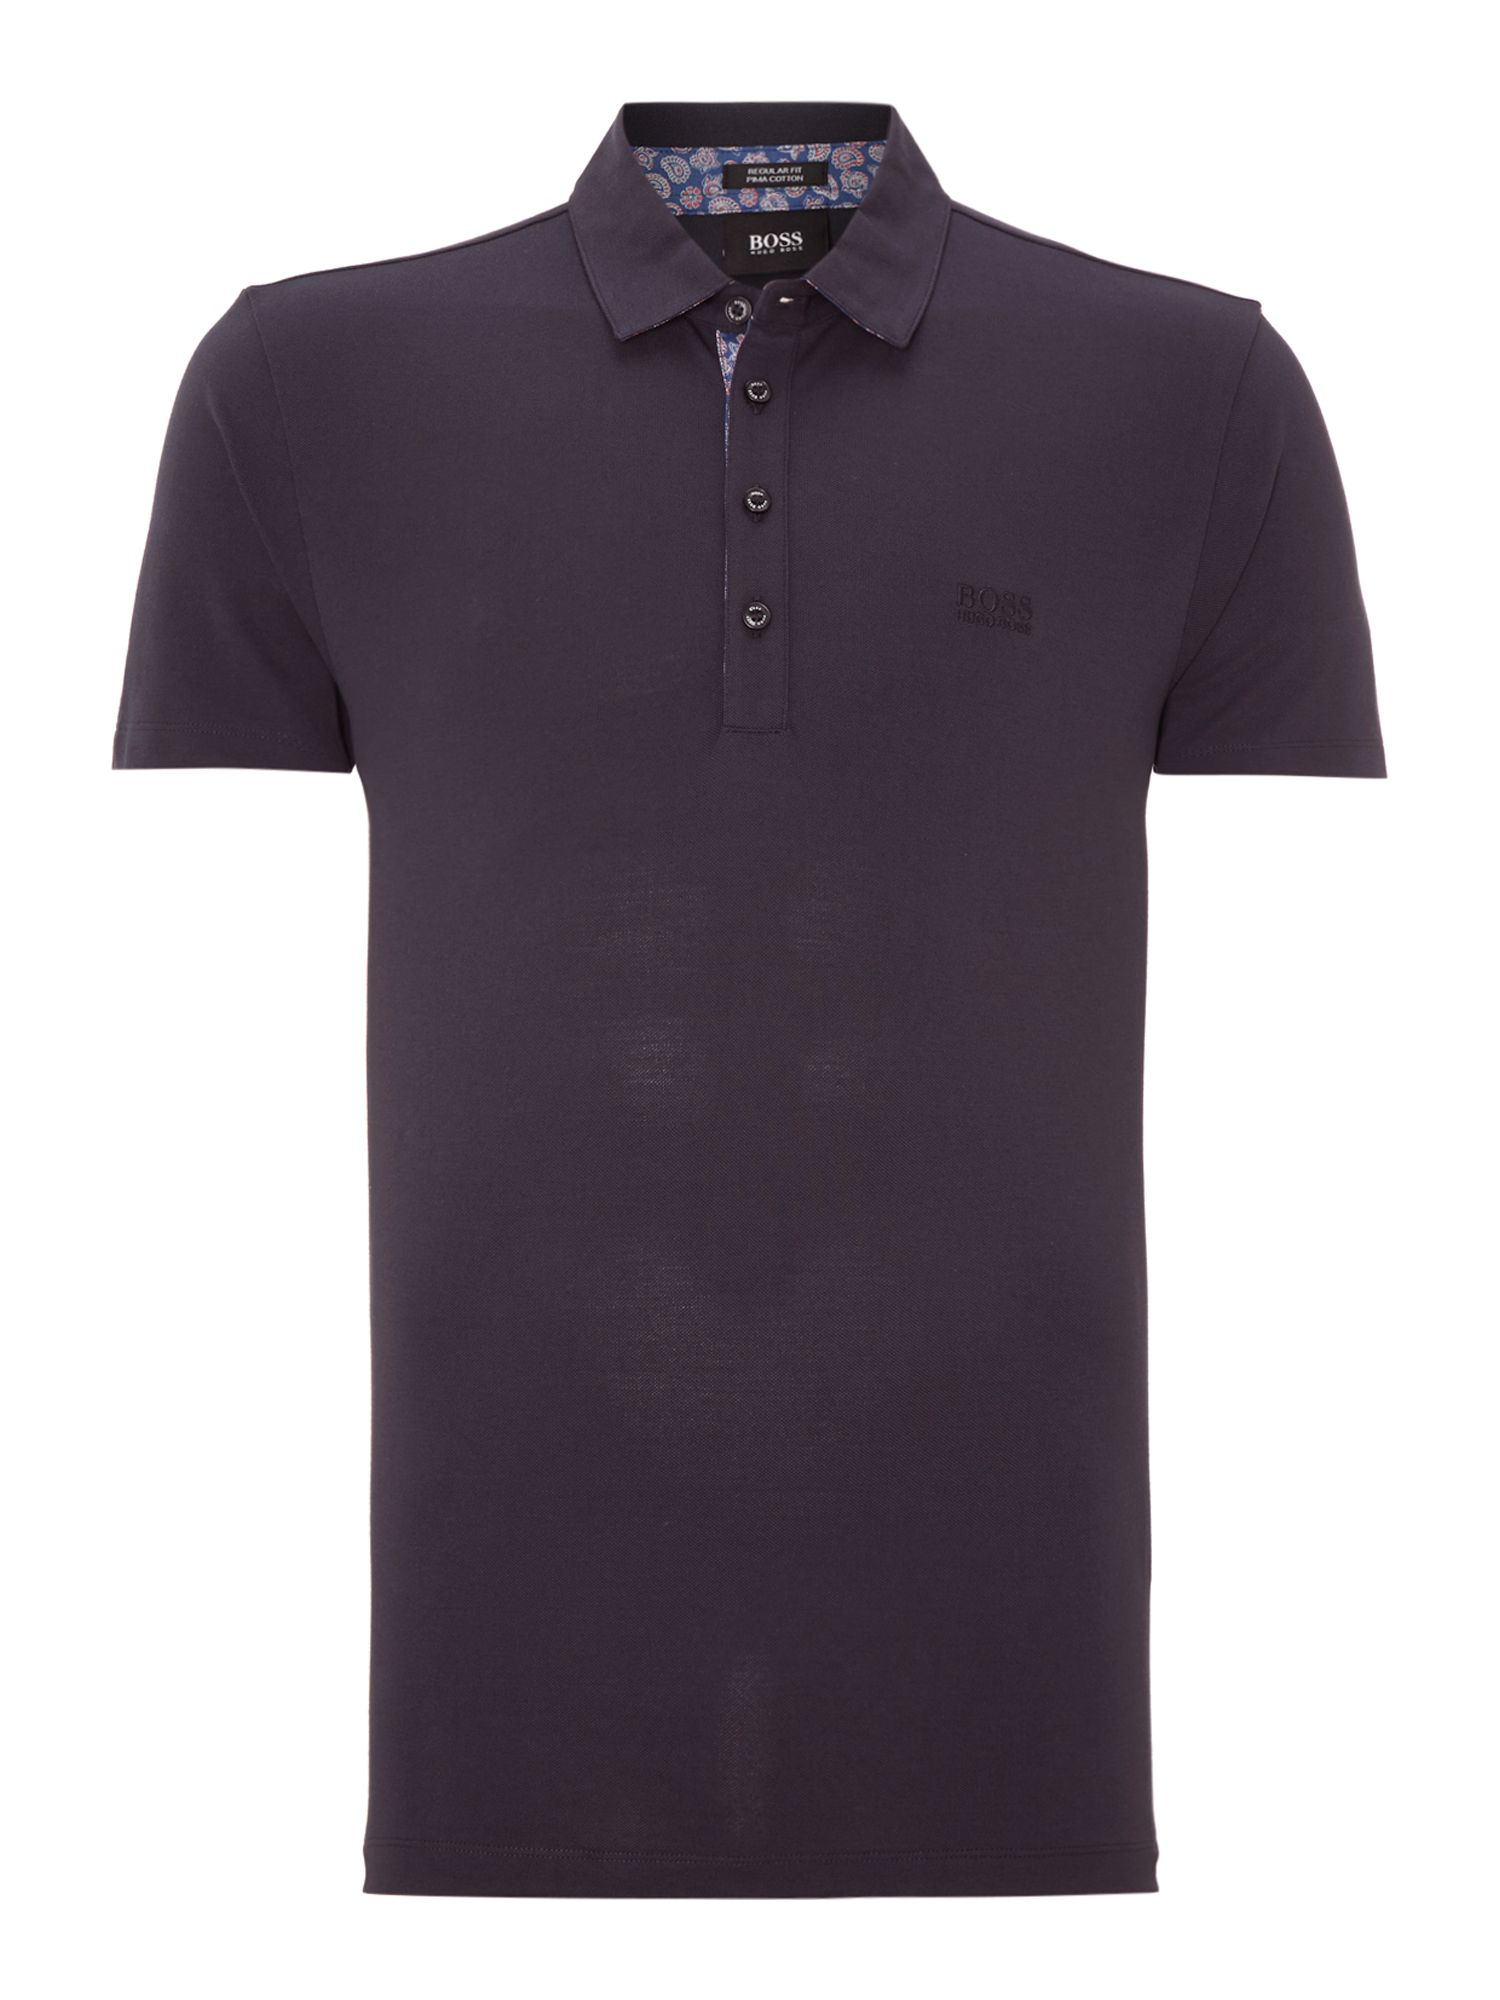 Paisley collar polo shirt